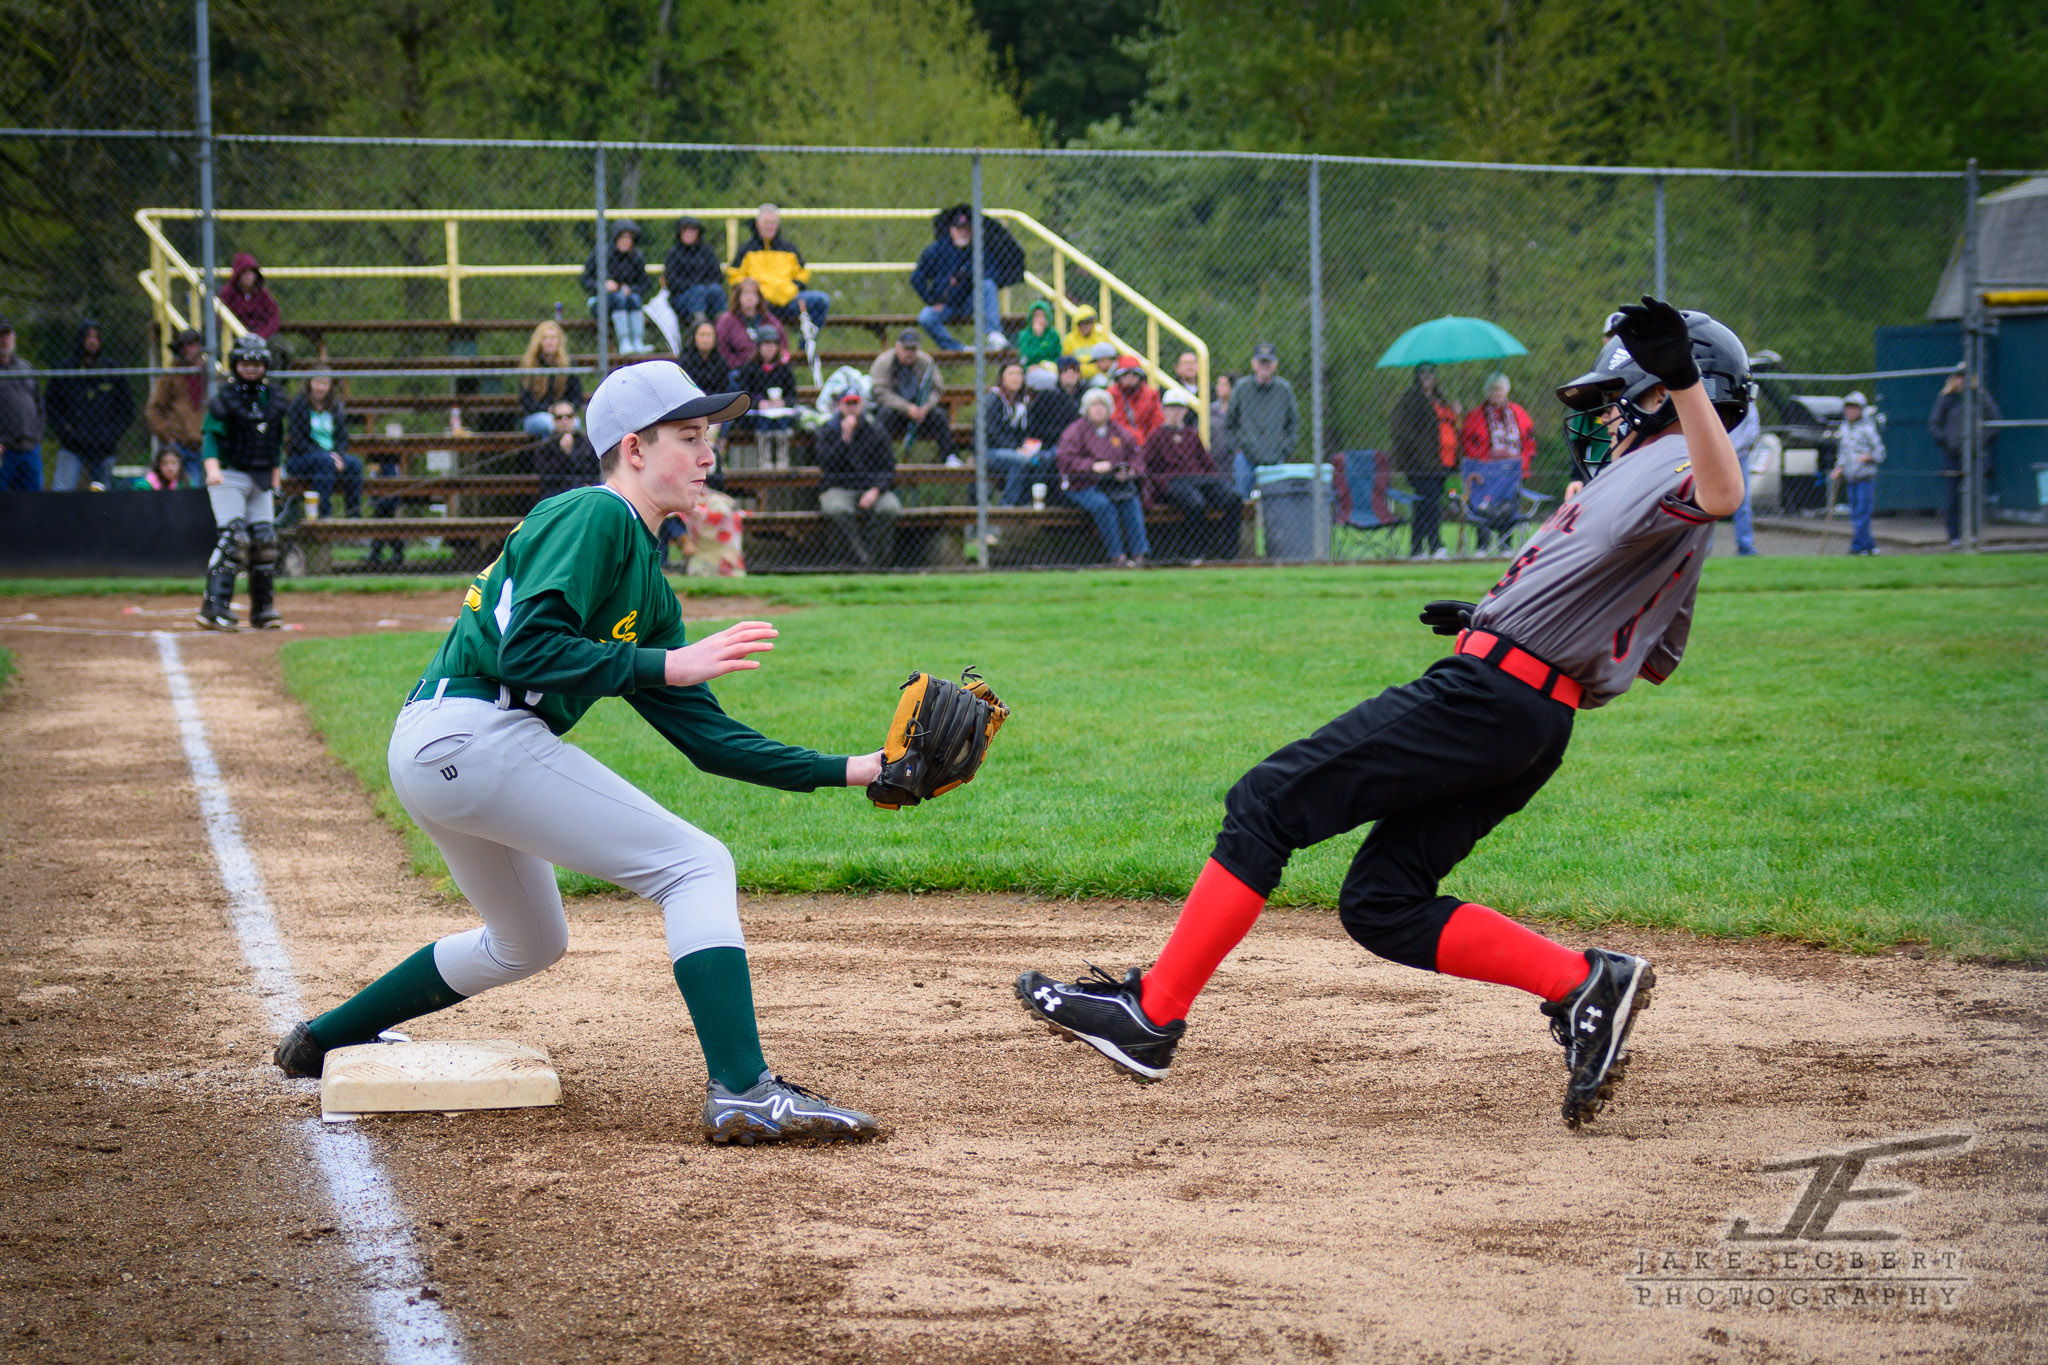 FB - 2014-04-05 - GreenSox - 19419.jpg